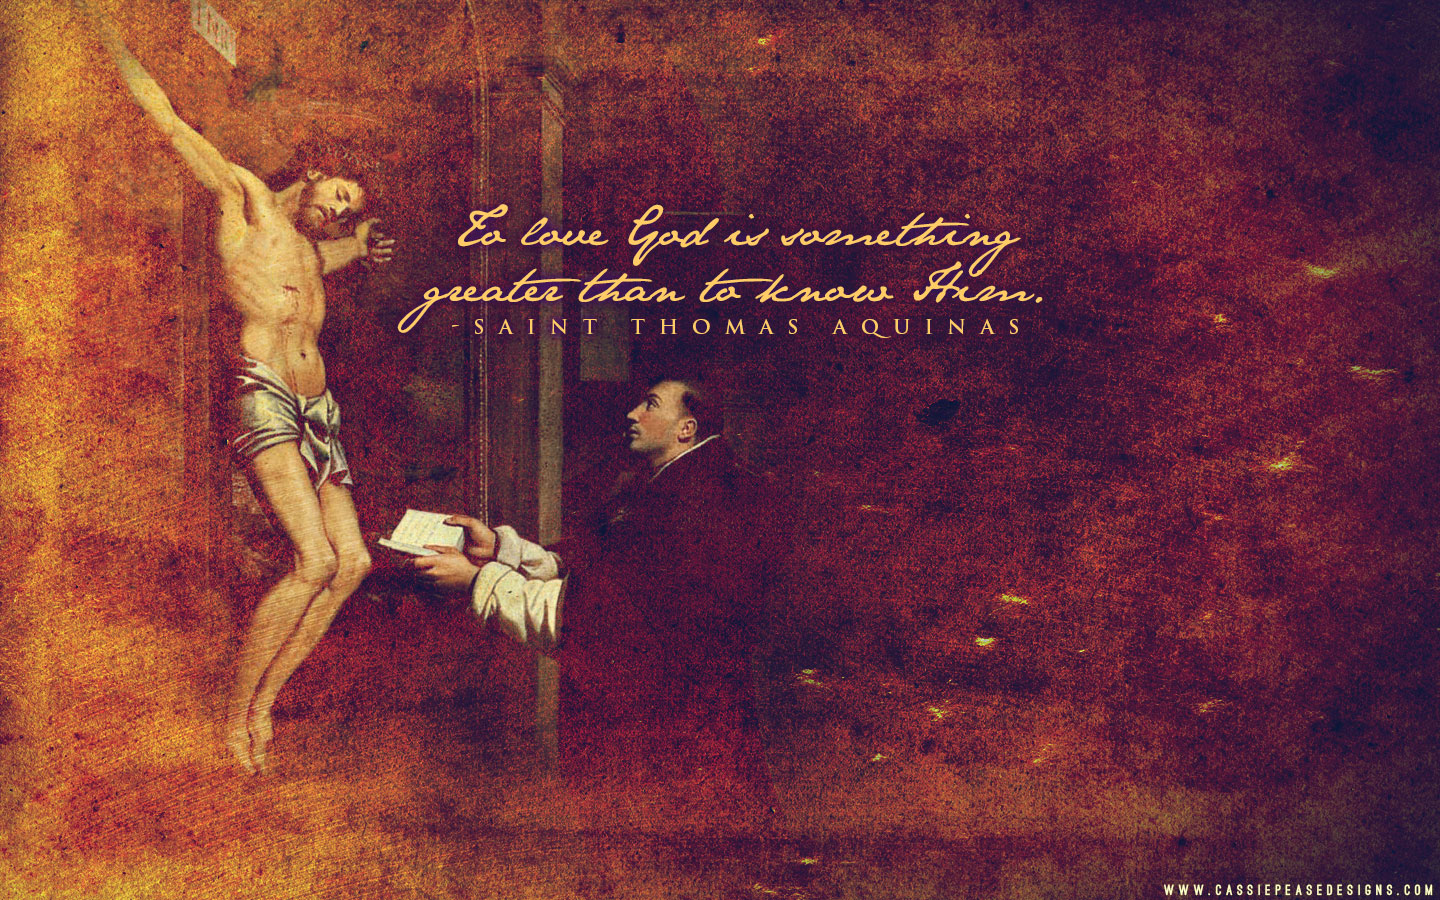 St. Thomas Aquinas Desktop Wallpaper